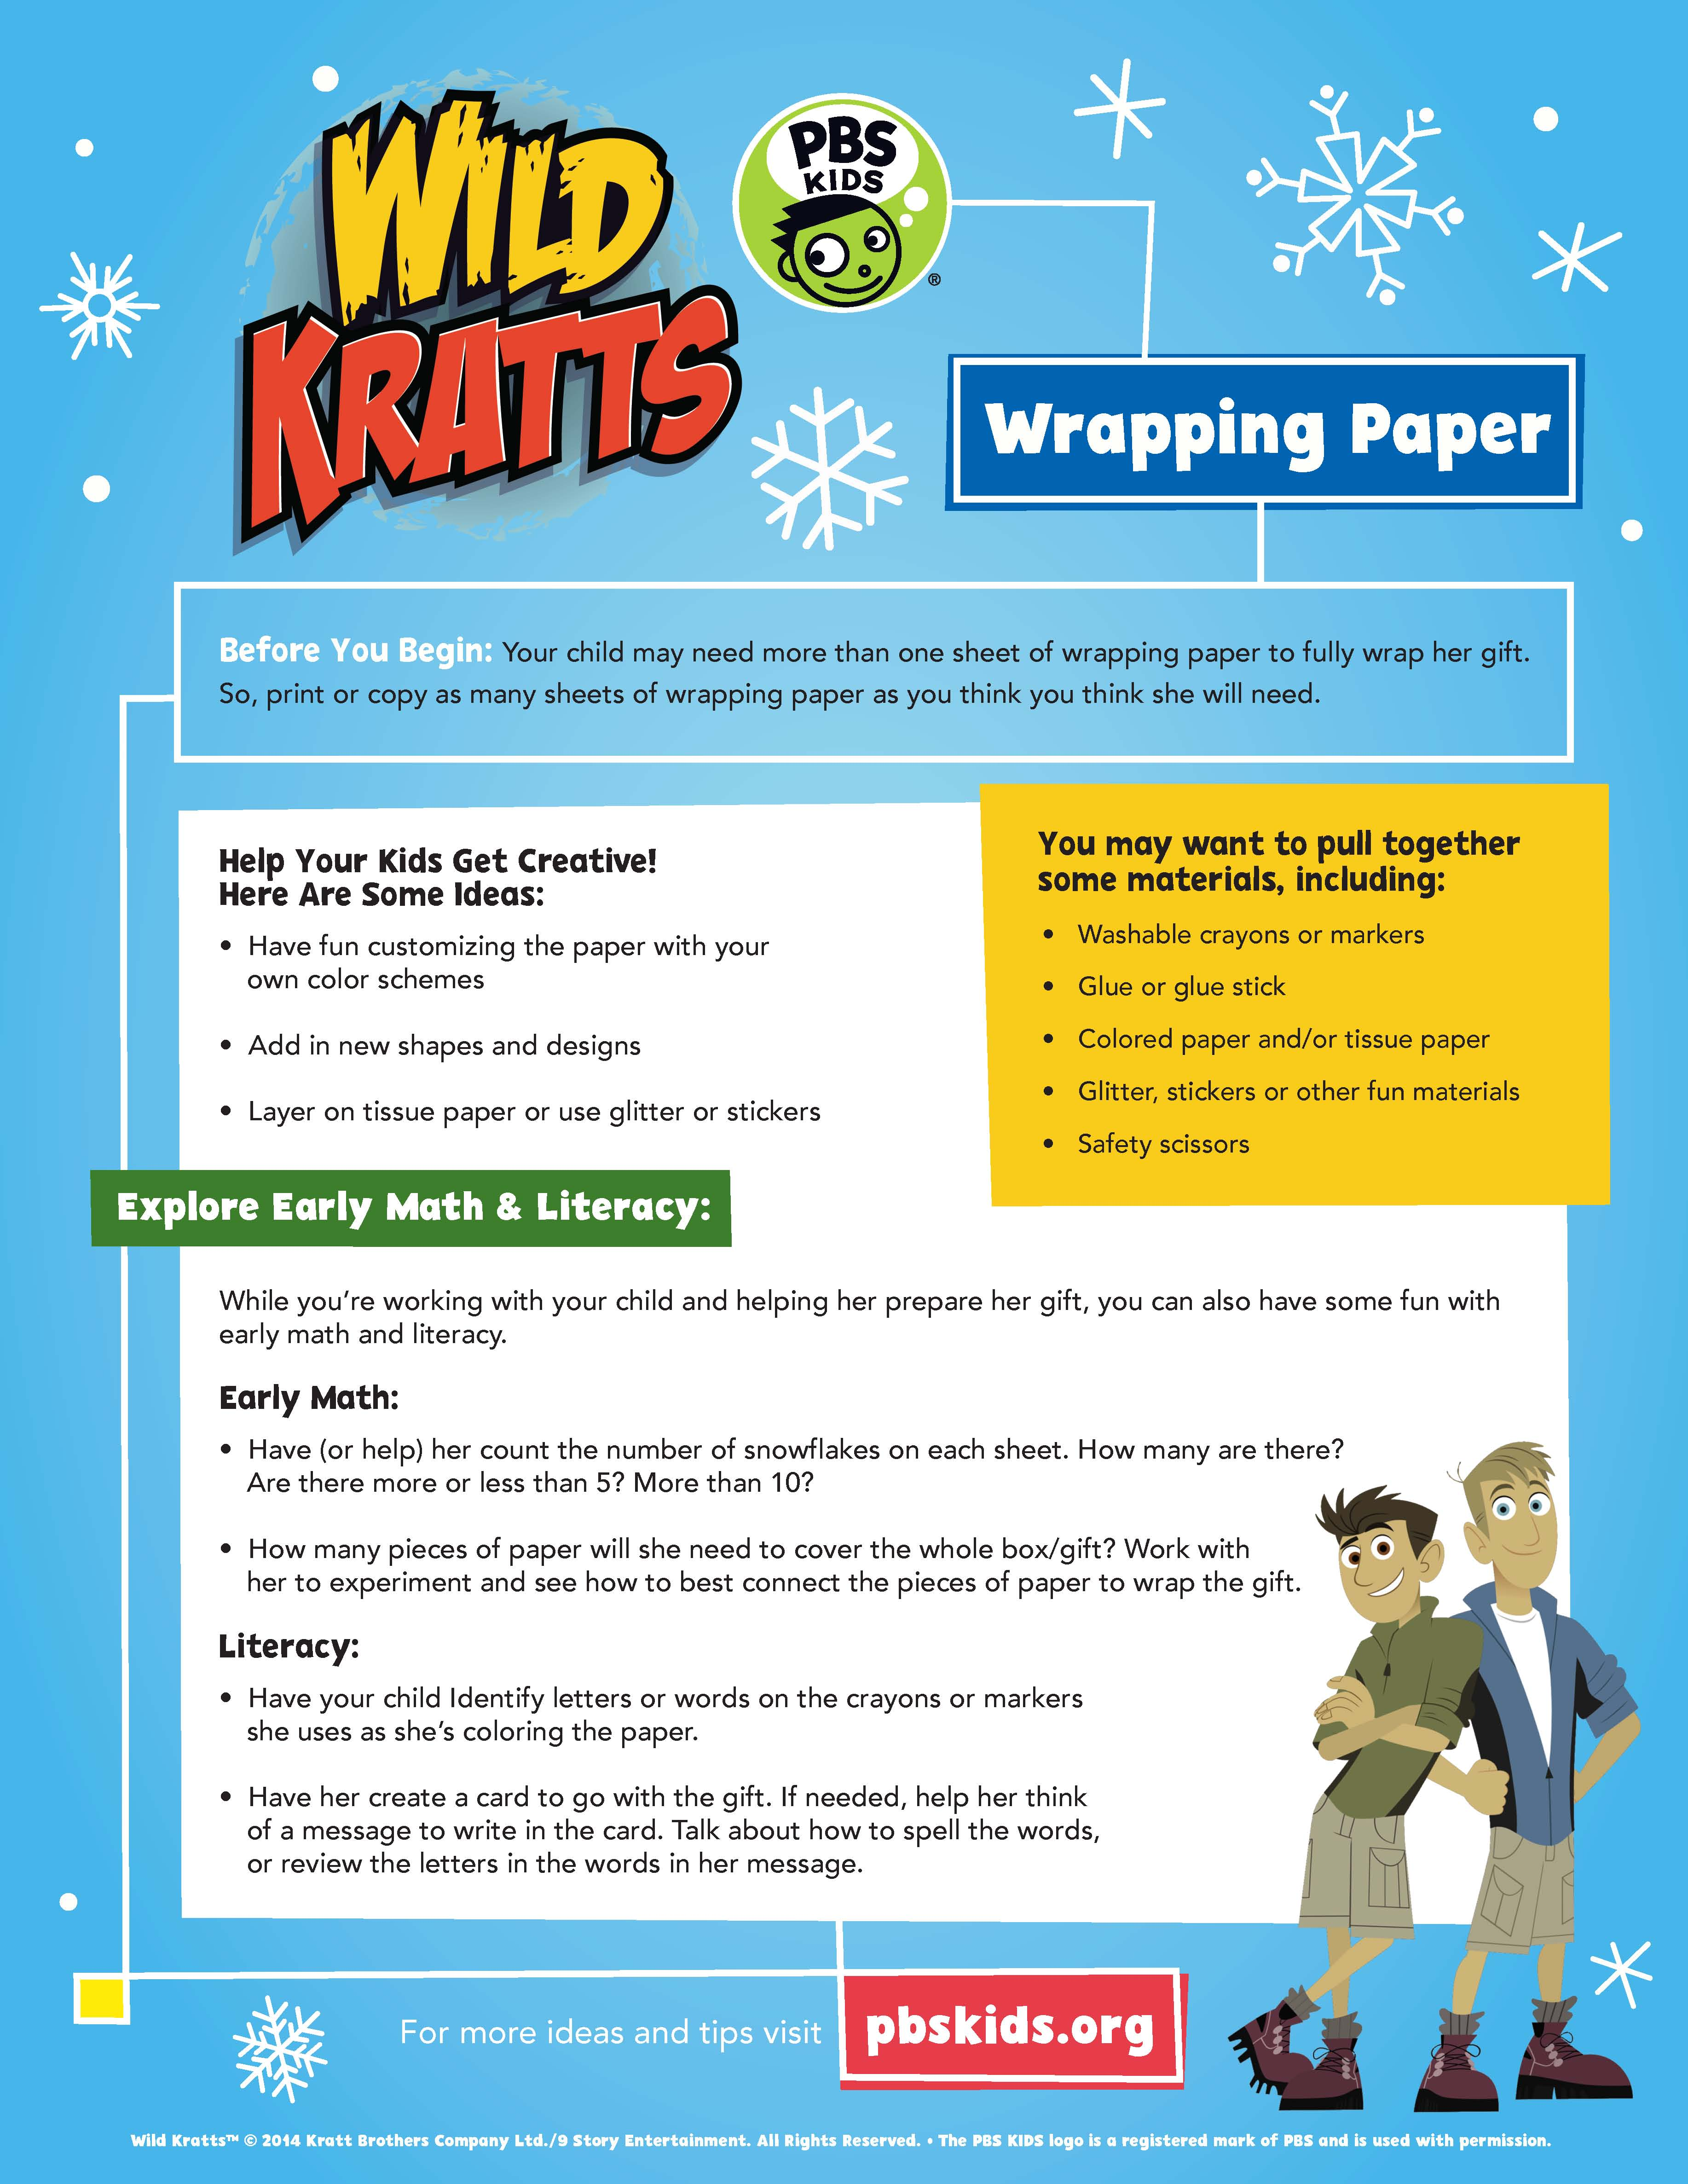 Wild kratts_wrapping paper_Page_1